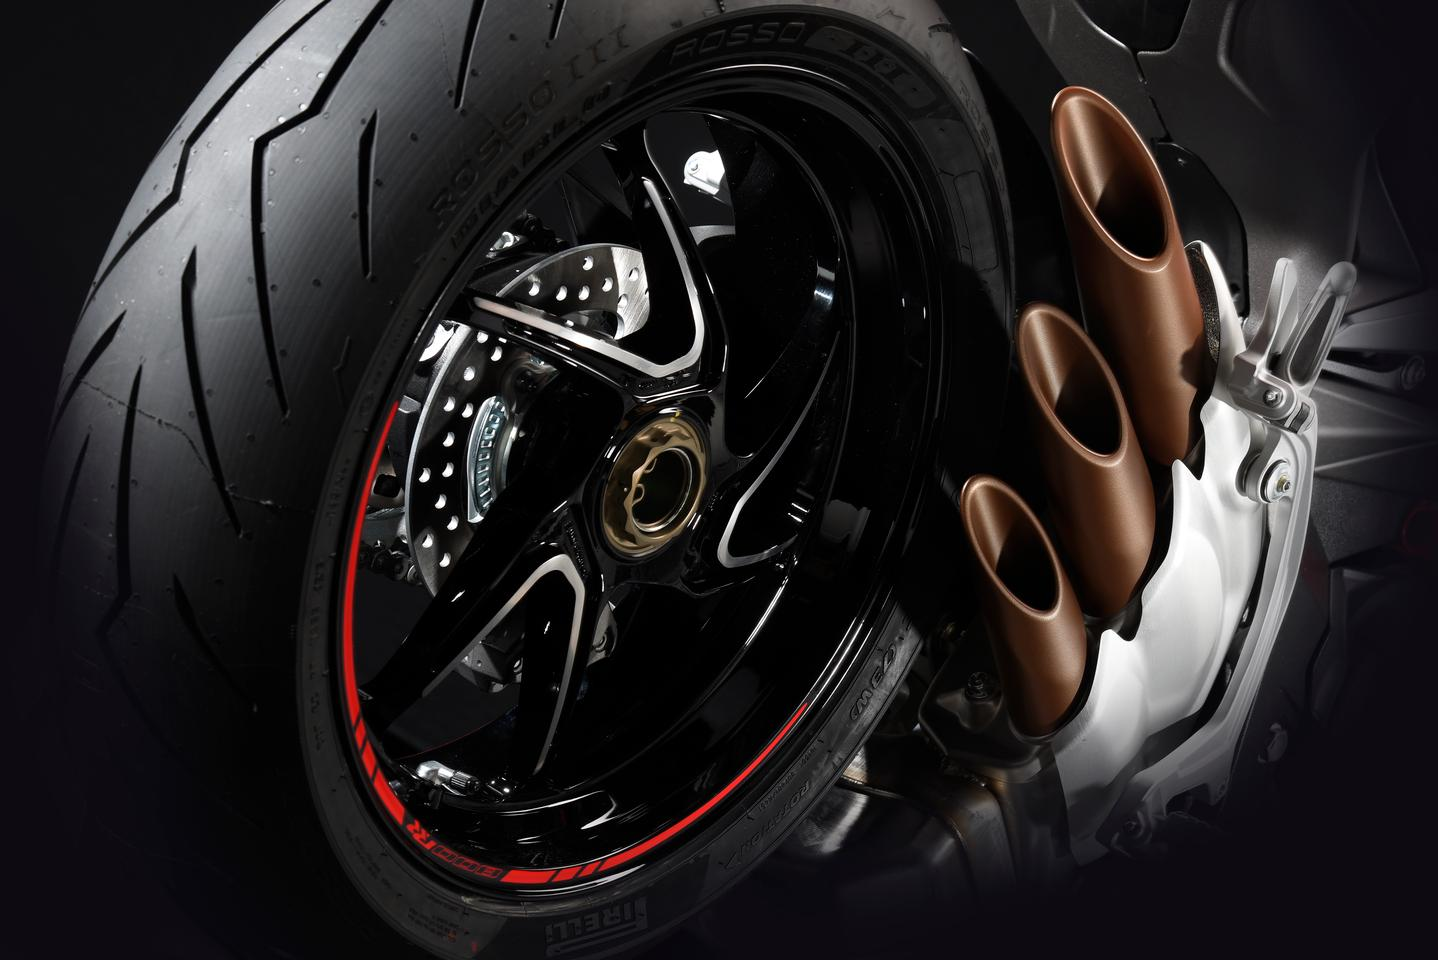 2017 MV Agusta Brutale 800 RR:forged rims reduce rotating mass for quicker turning